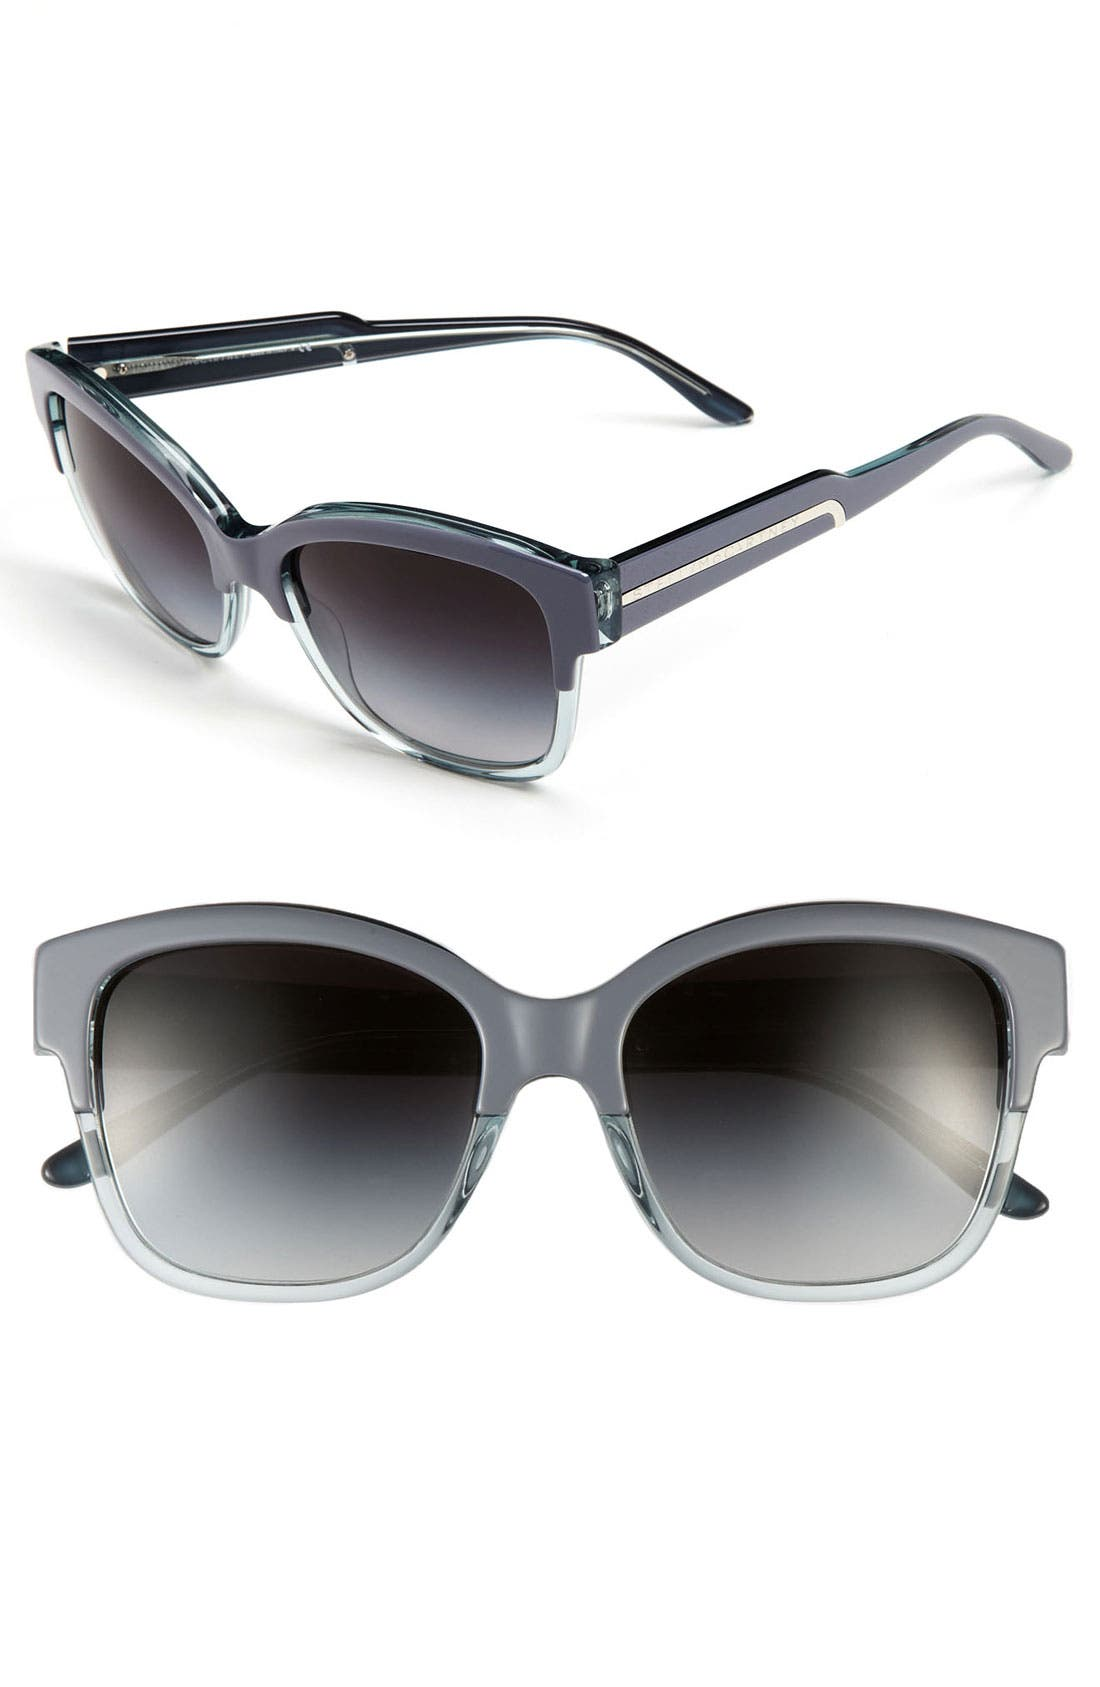 Main Image - Stella McCartney 55mm Retro Sunglasses